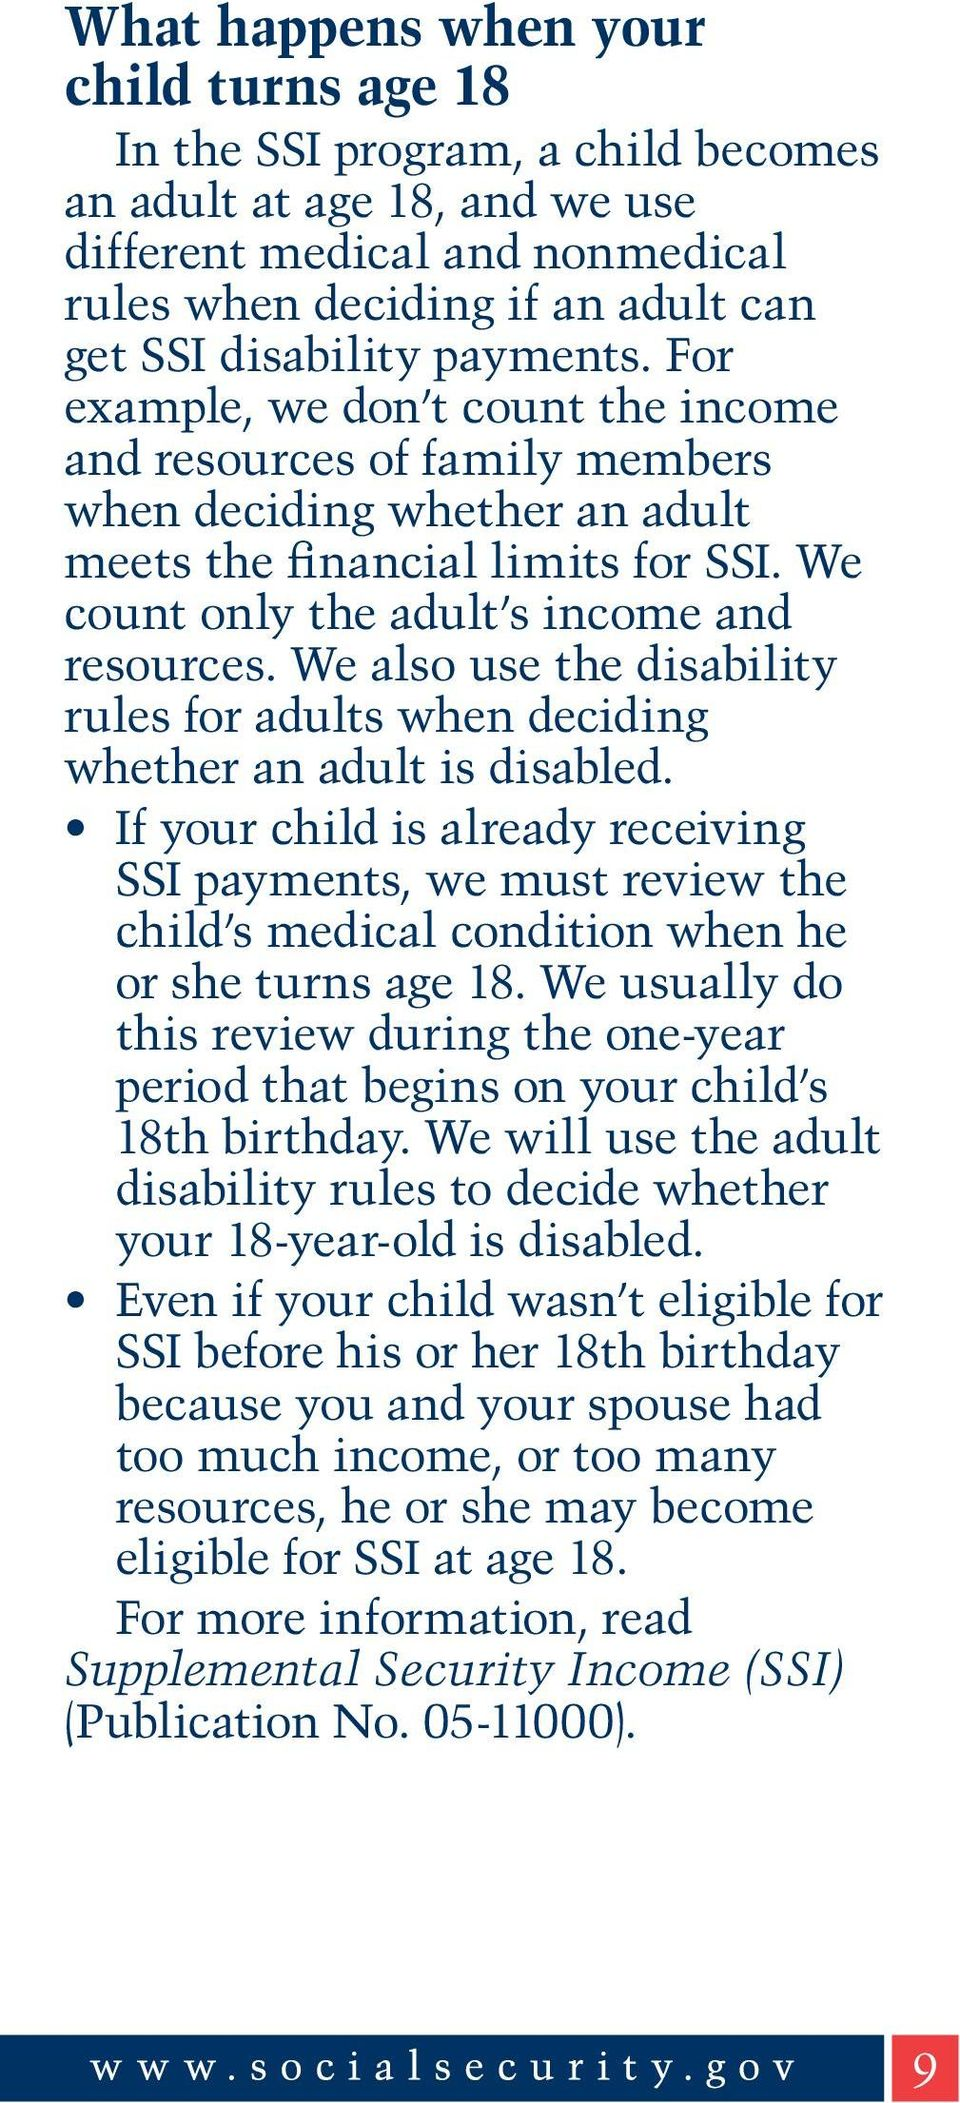 We also use the disability rules for adults when deciding whether an adult is disabled.